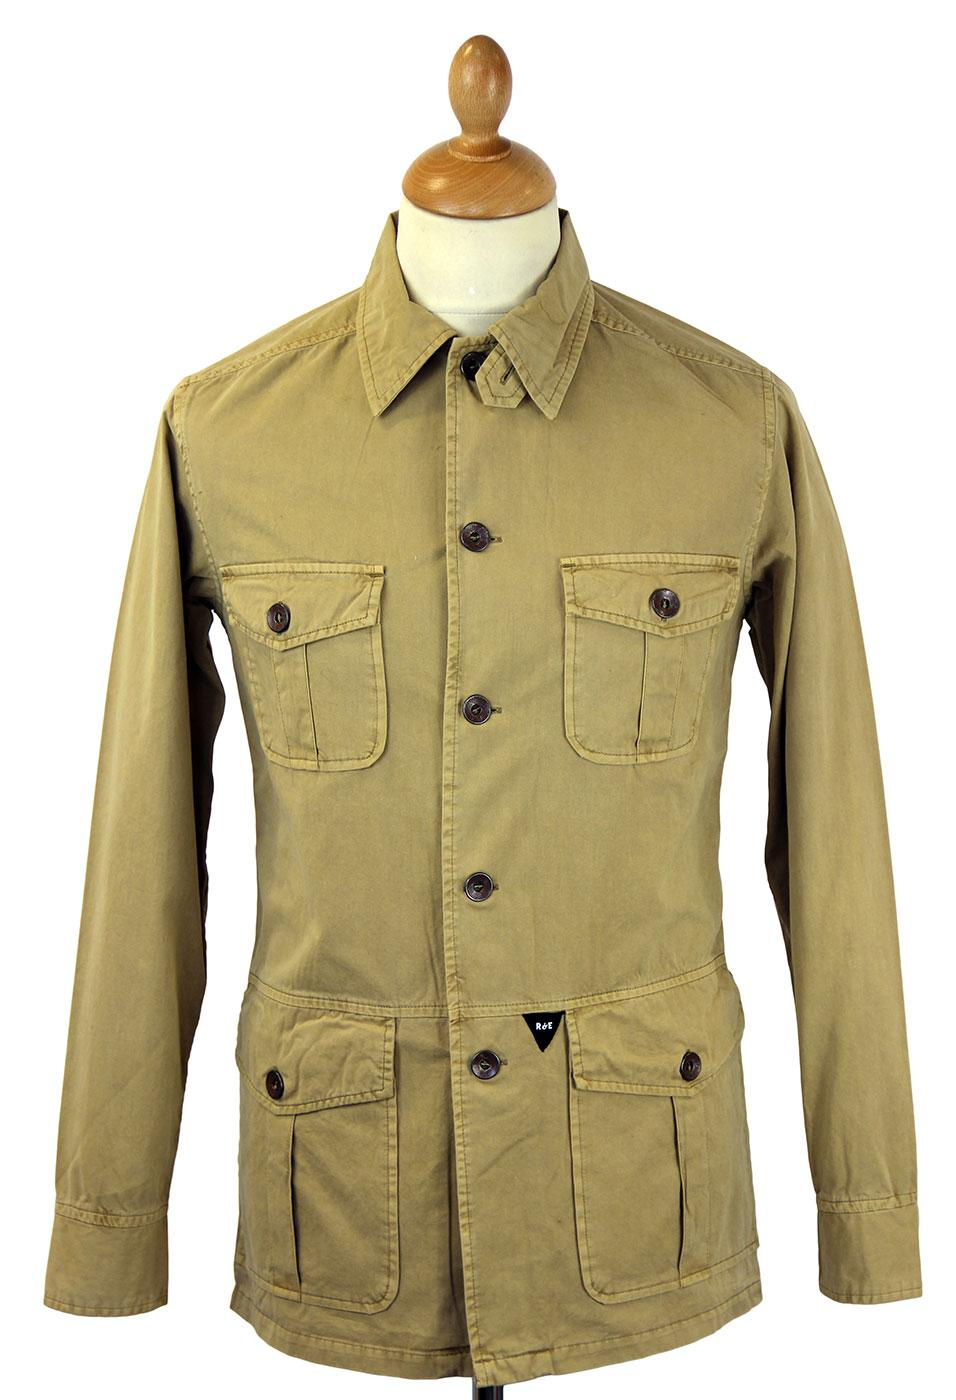 REALM & EMPIRE Retro Military Classic Overshirt T